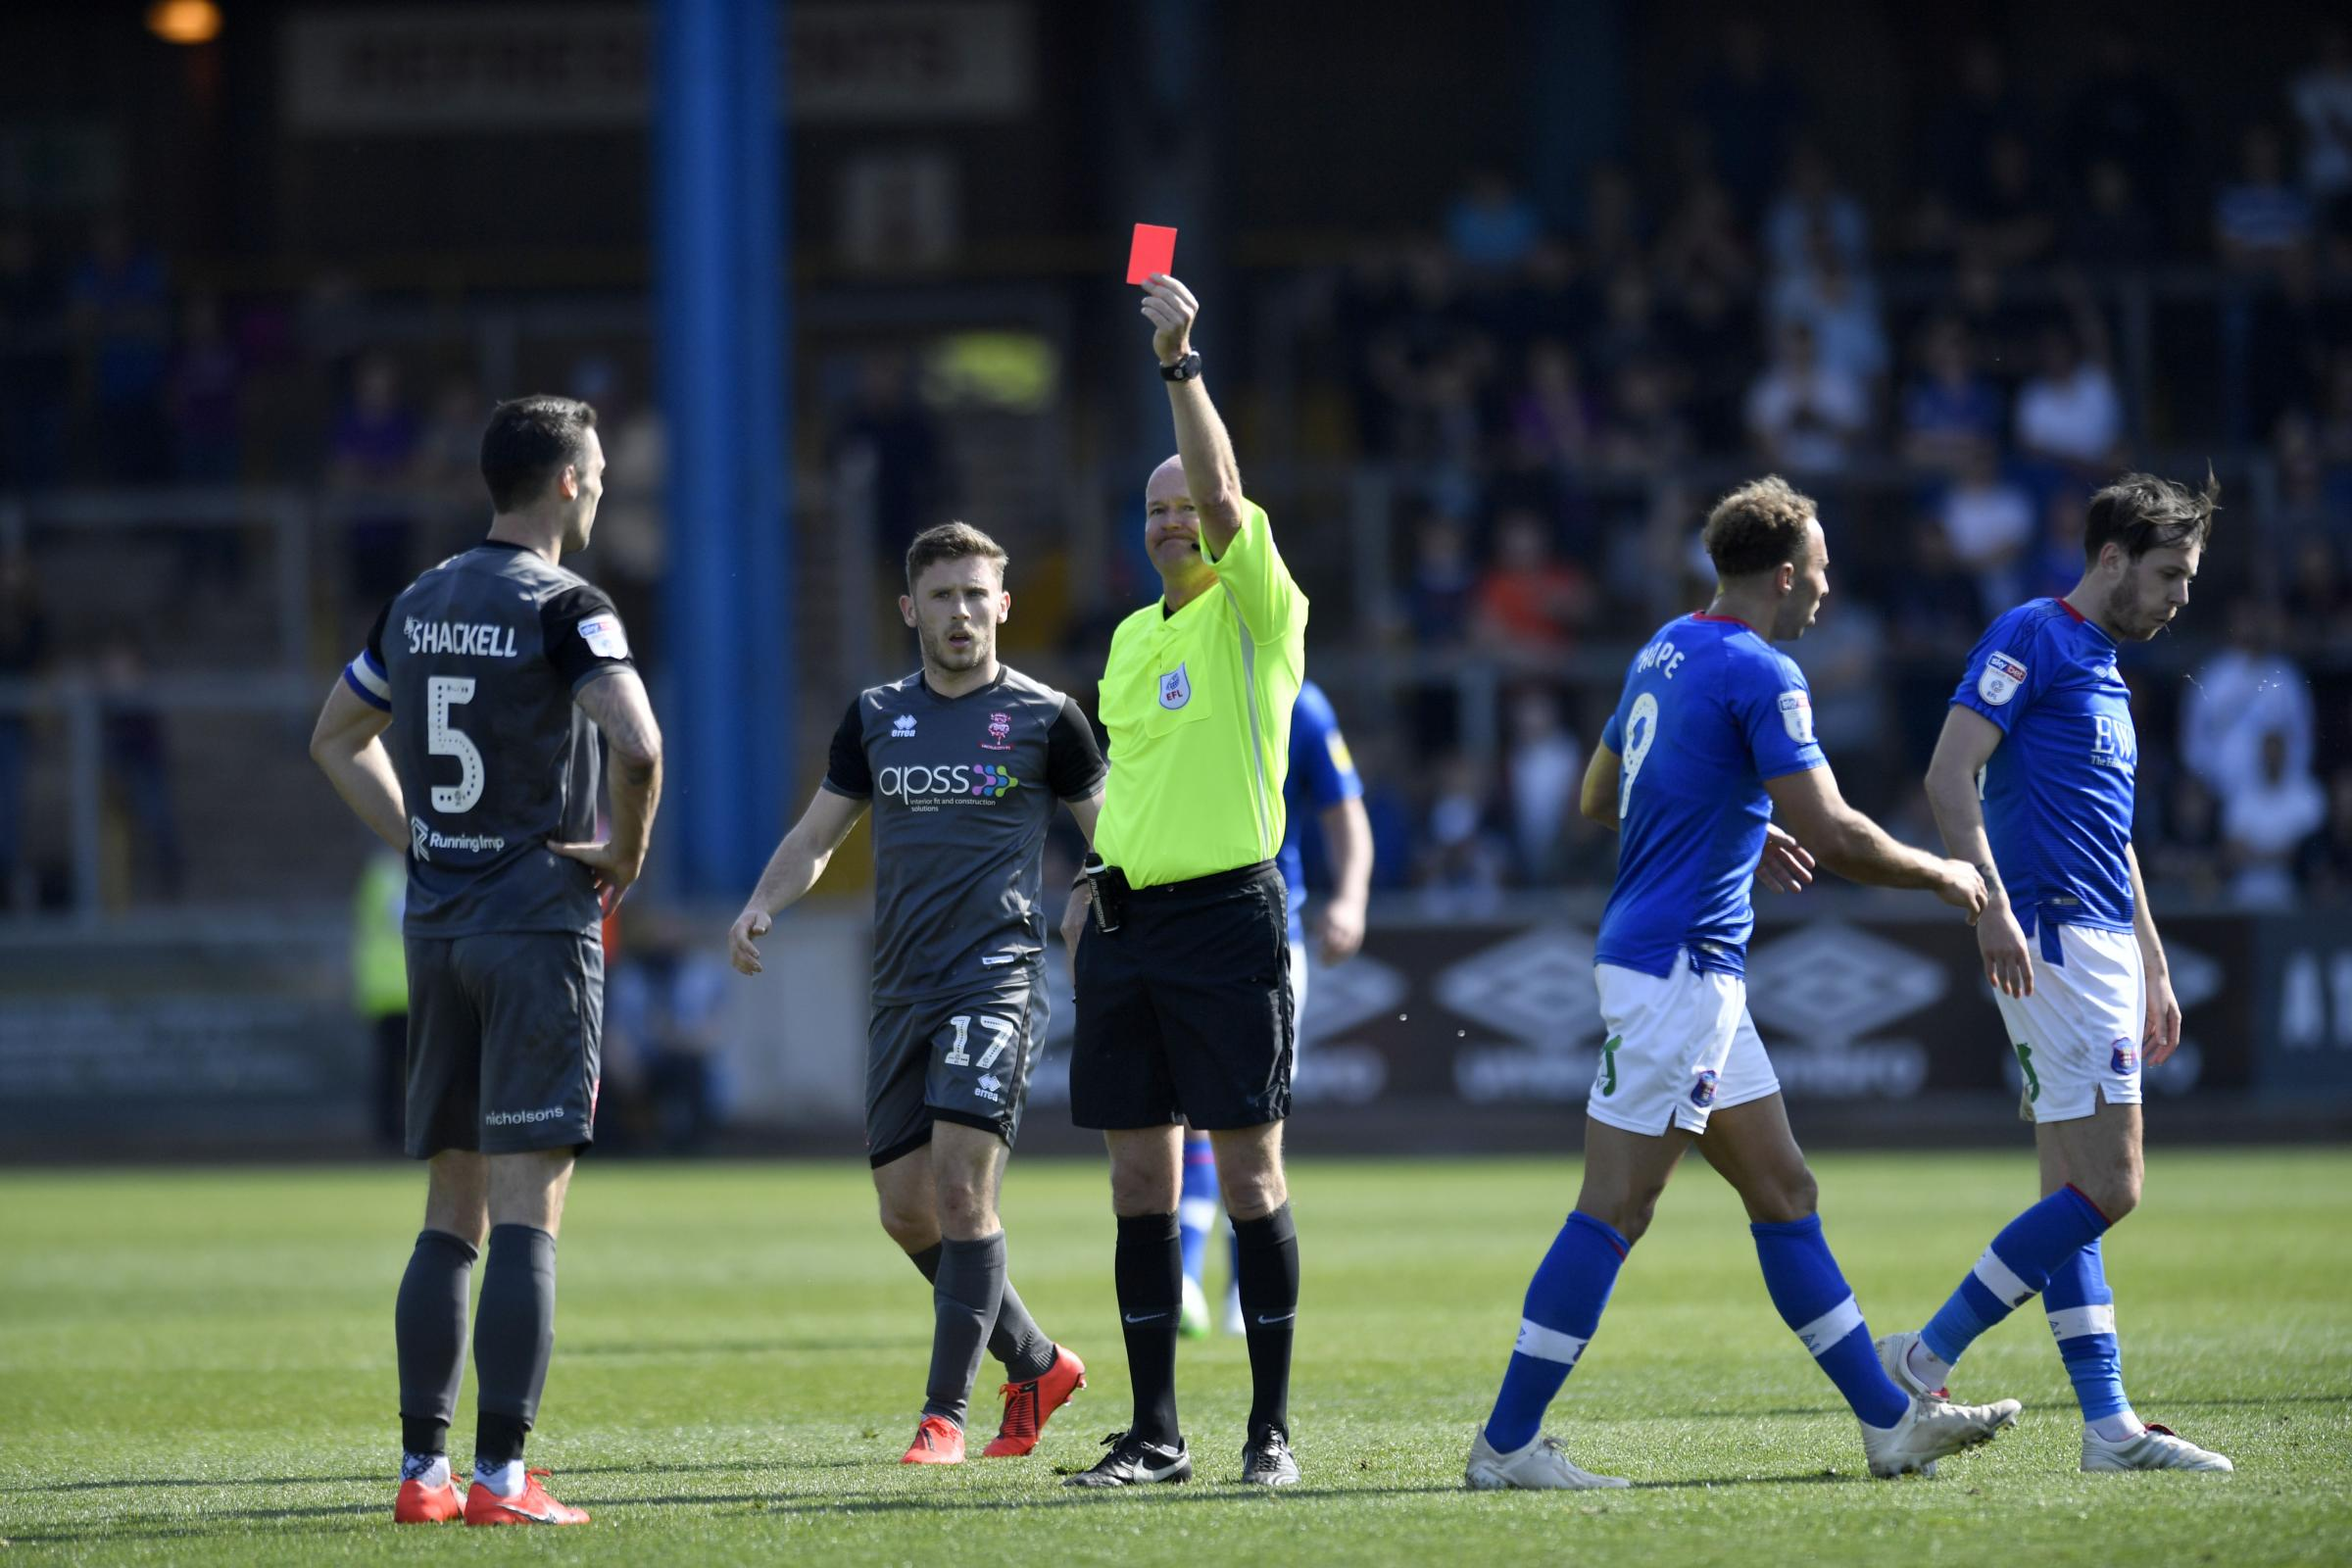 Shackell is shown the red card by ref Lee Mason (photo: Stuart Walker)